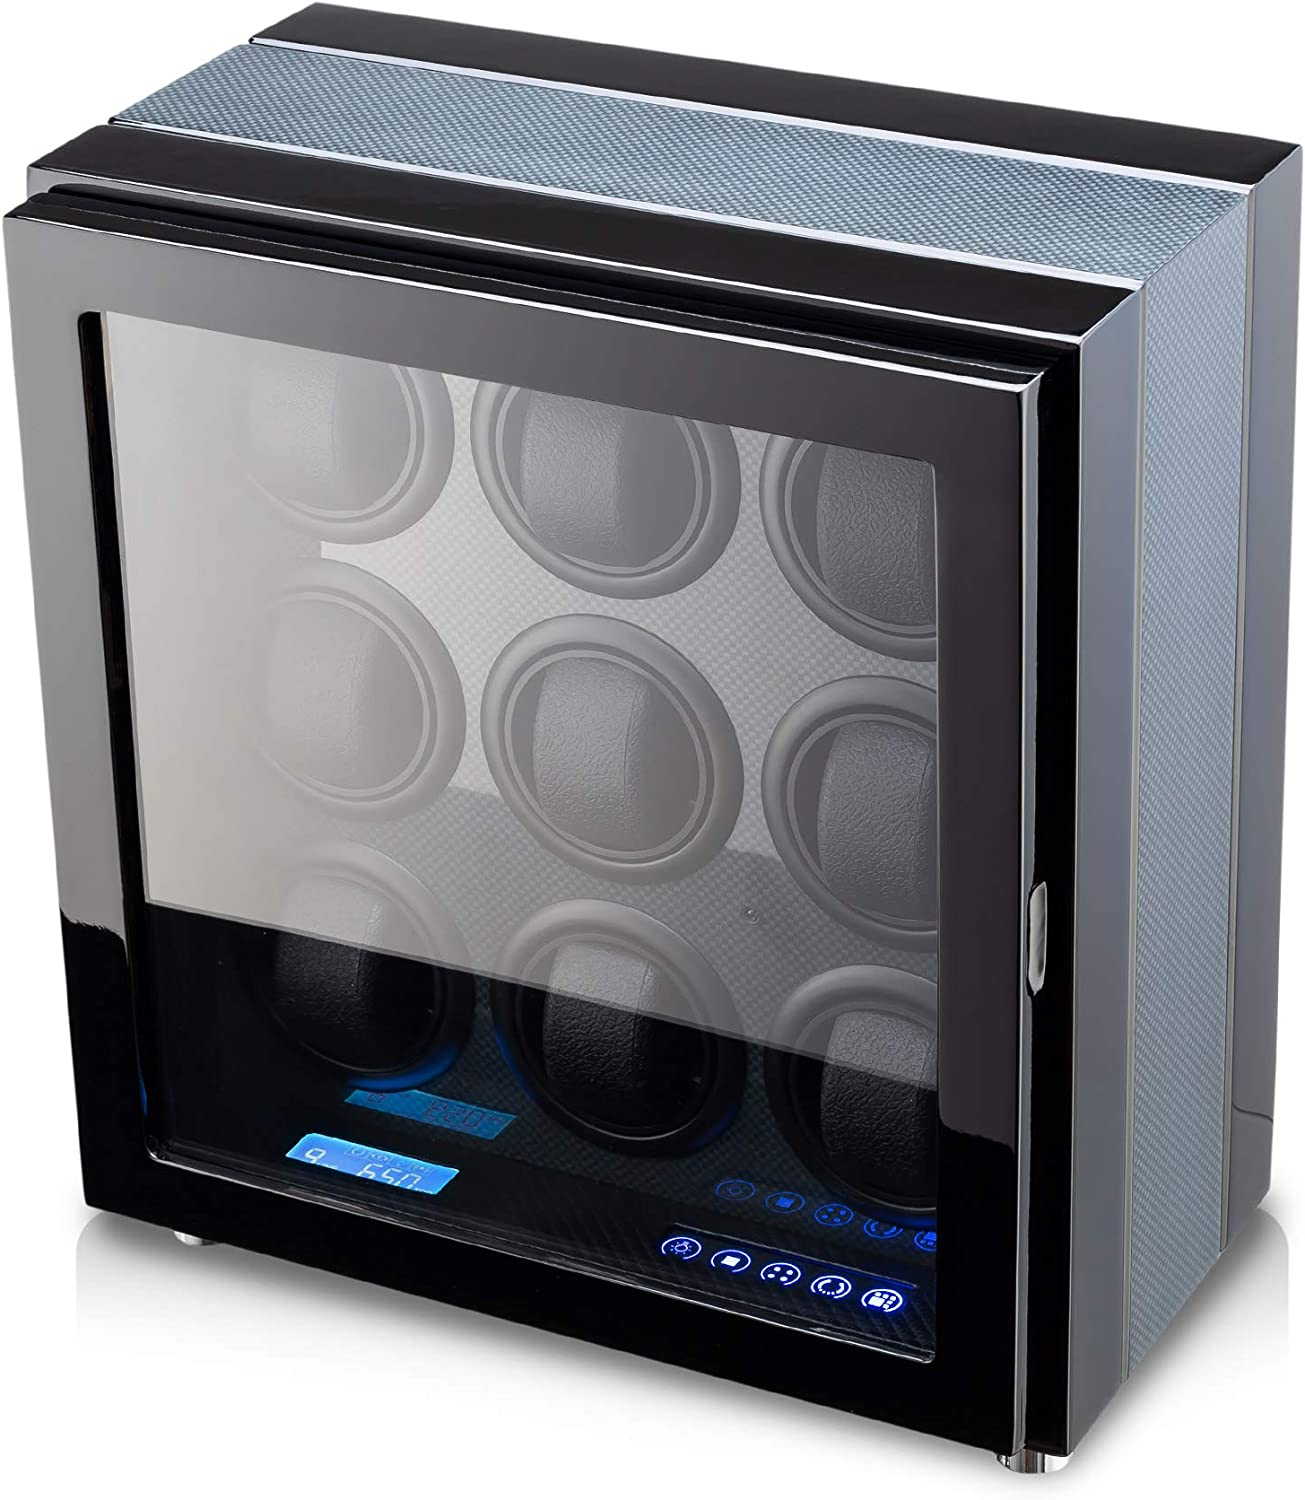 Watch Winder for 9 Watches with New Sacramento Mall arrival Backlight LED Control and Remote